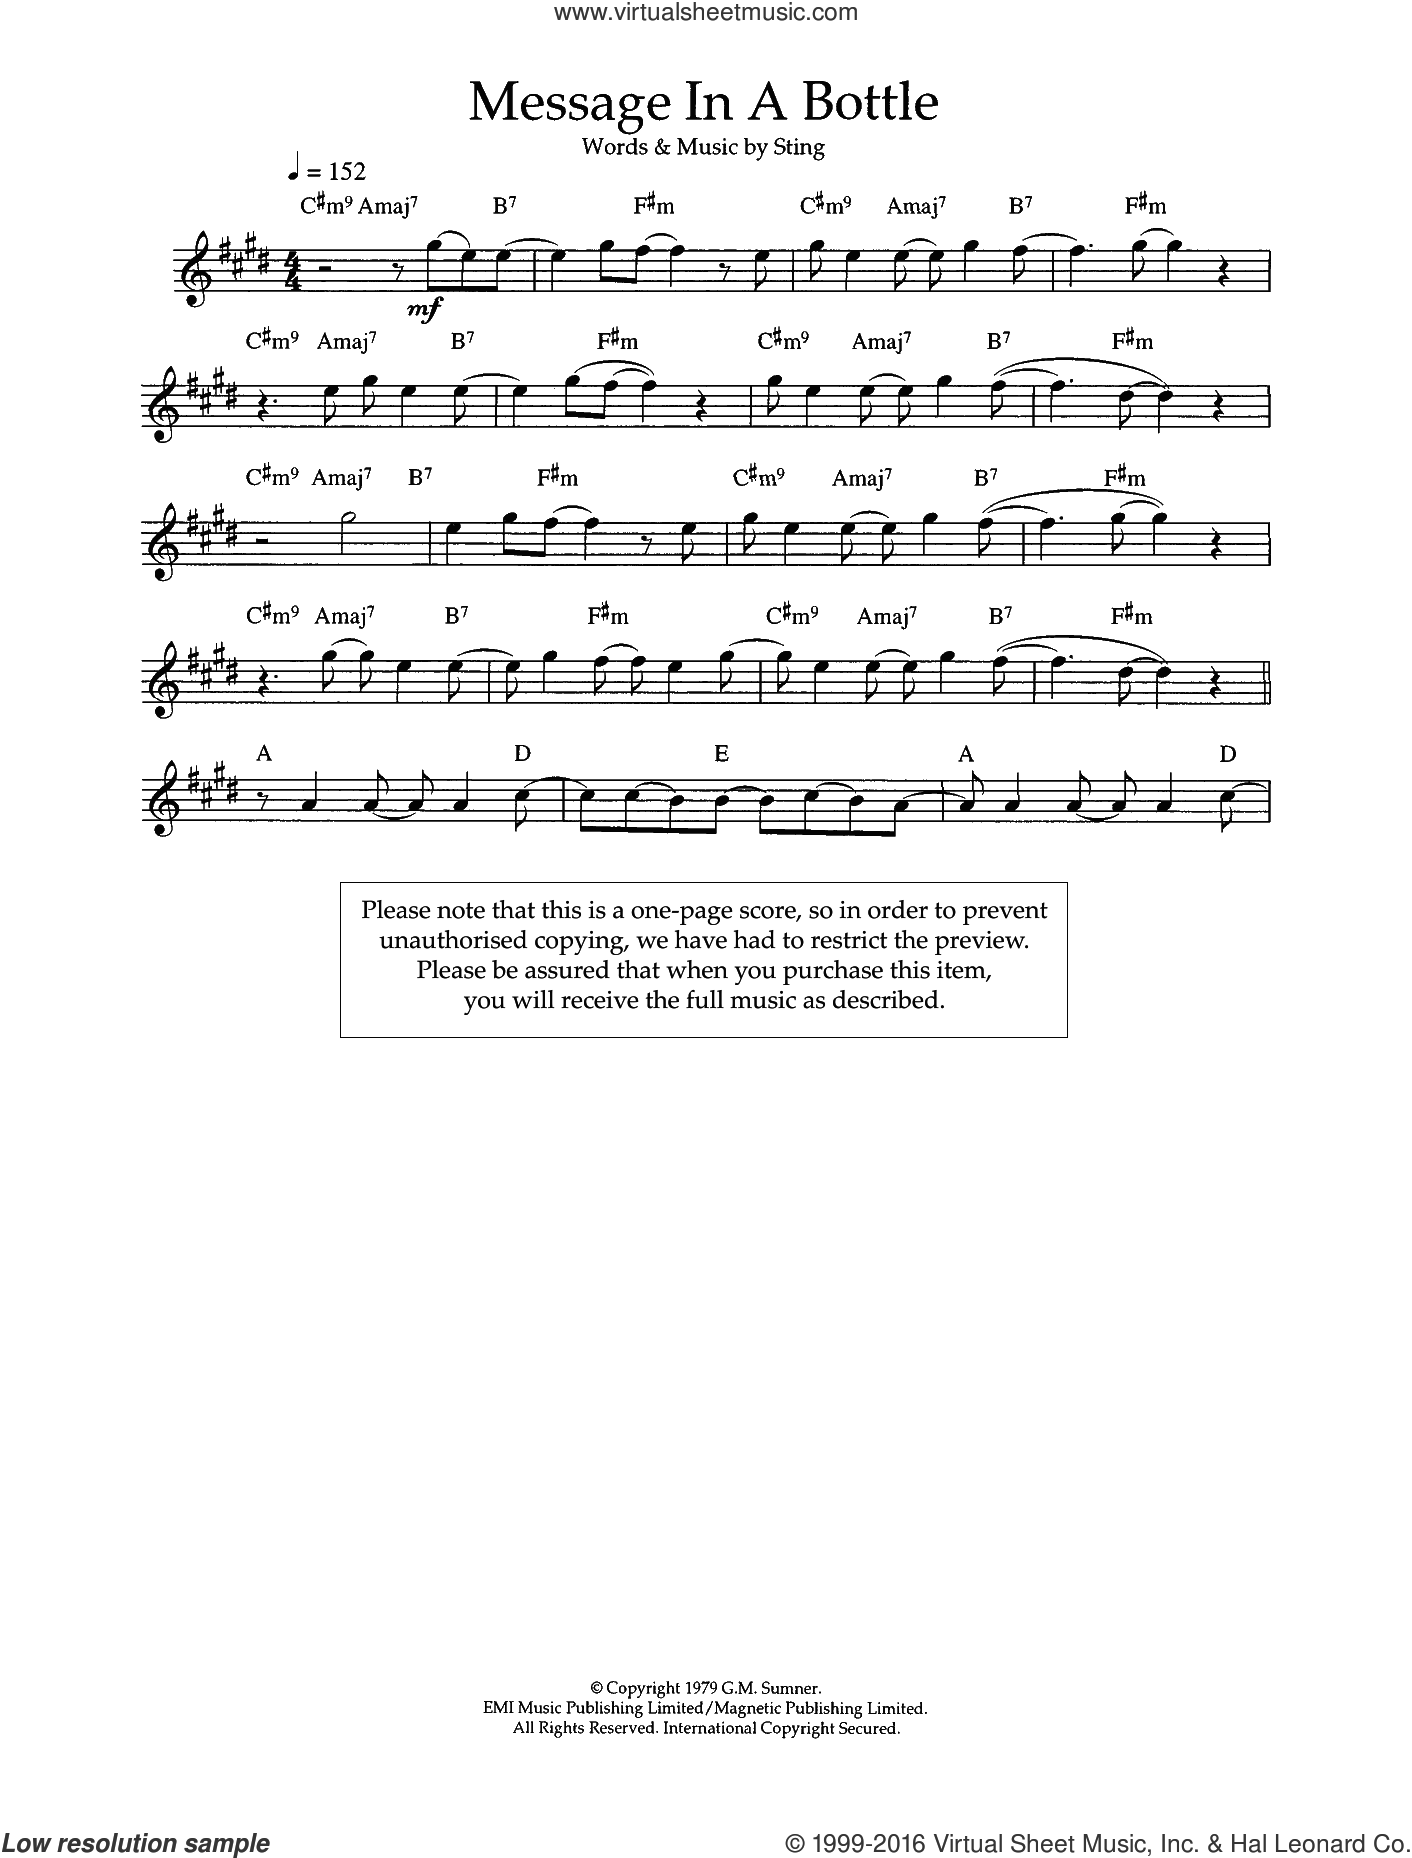 Message In A Bottle sheet music for flute solo by Sting and The Police. Score Image Preview.